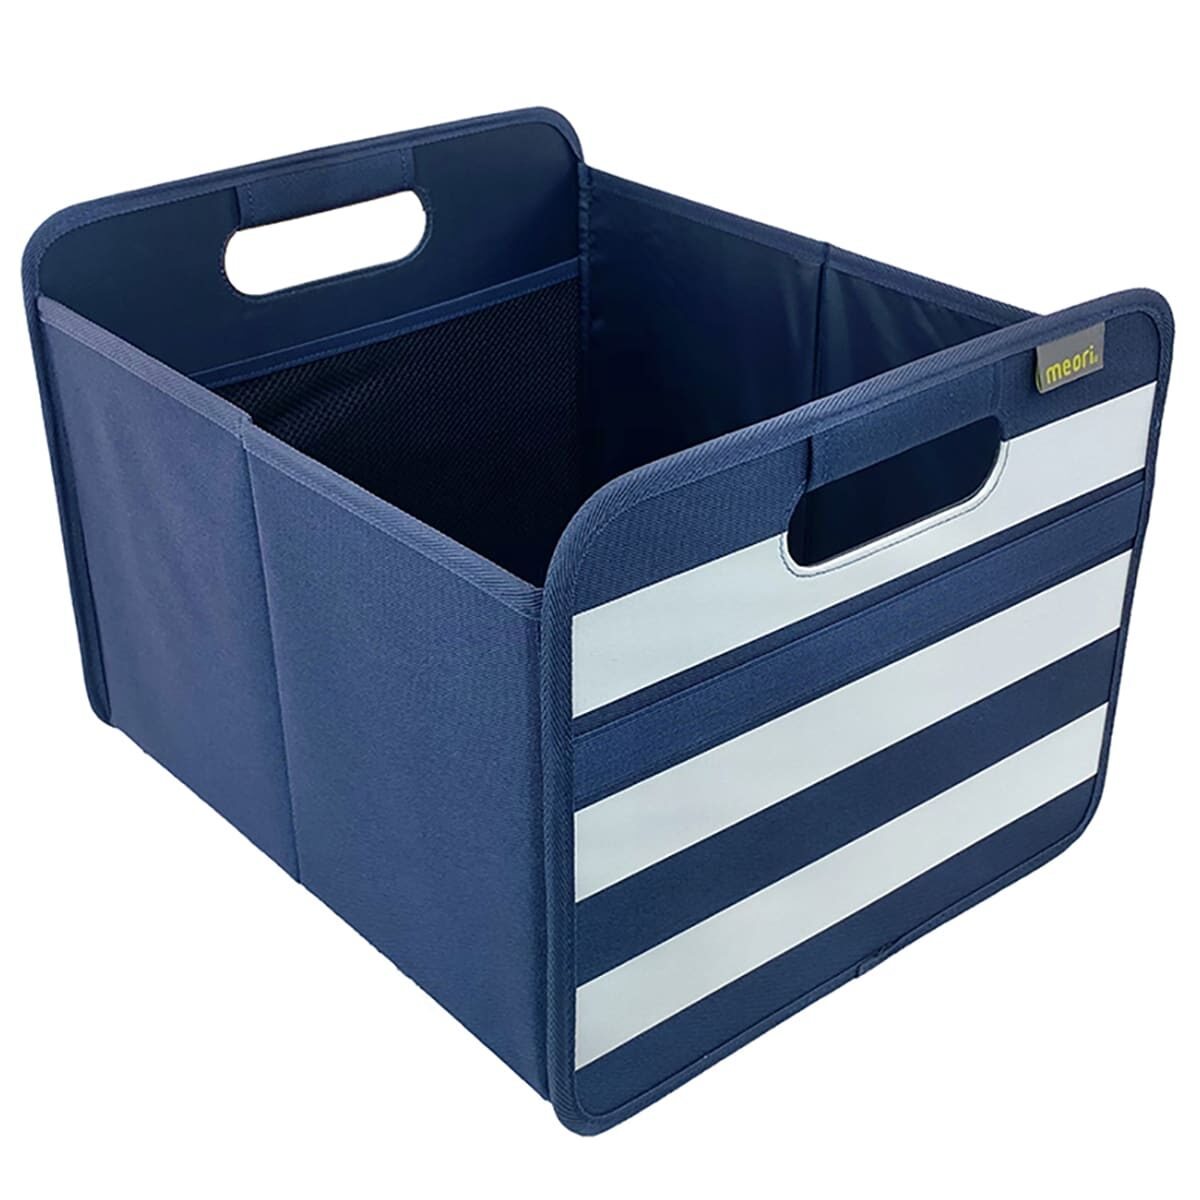 A100734 1 Storage Bins meori Foldable Box Medium Marine Blue Stripes 1